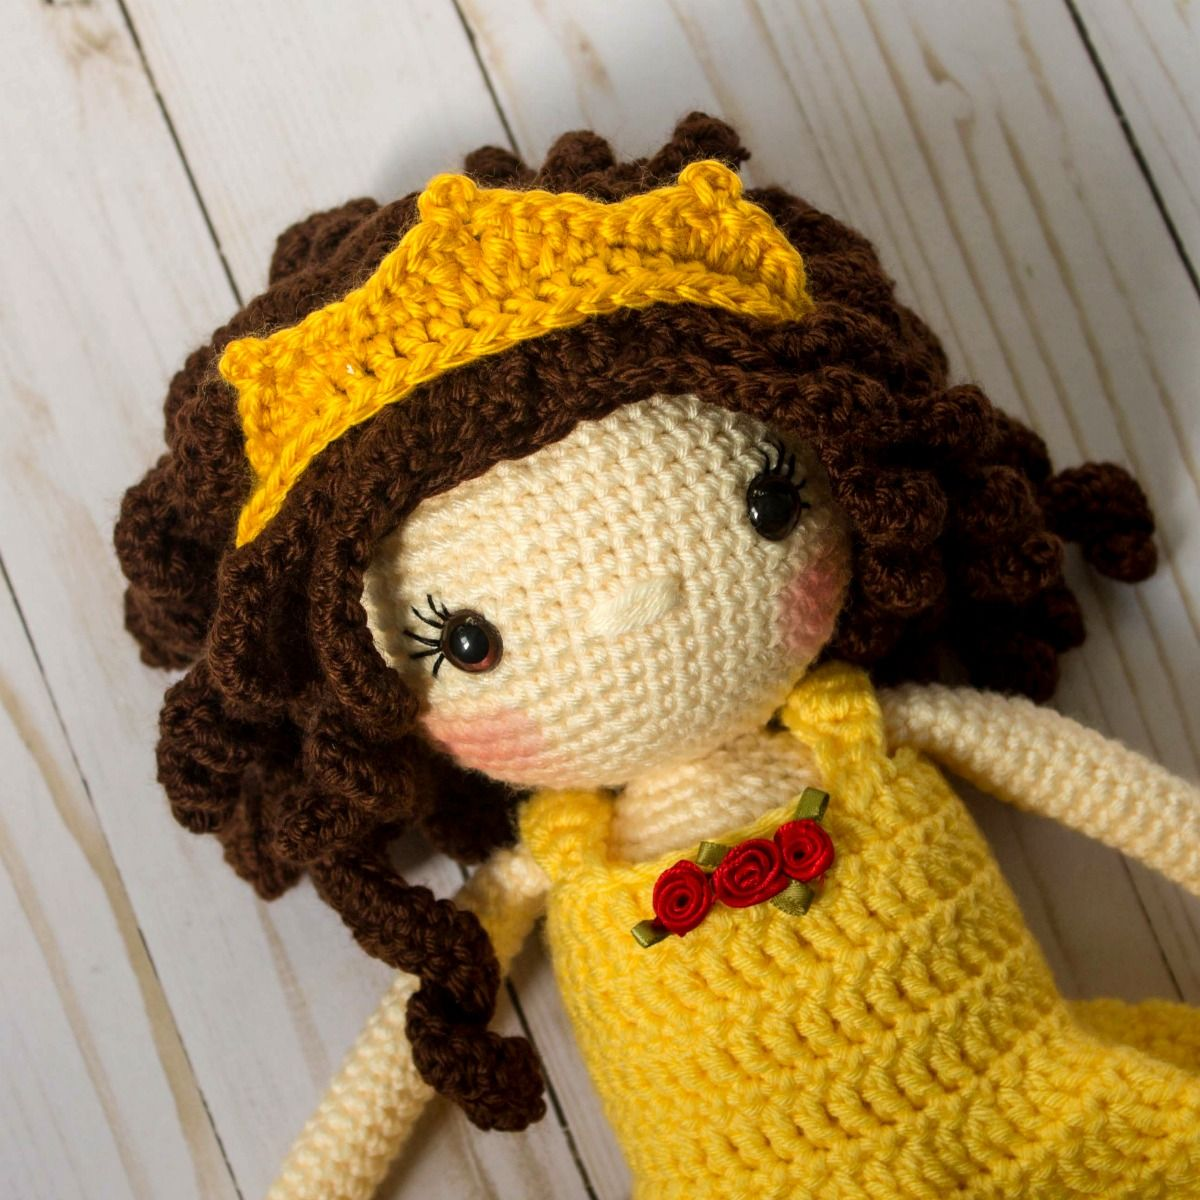 This post contains all the special details to make the Princess Sophie Doll. If you are looking for the base doll pattern, please go here...